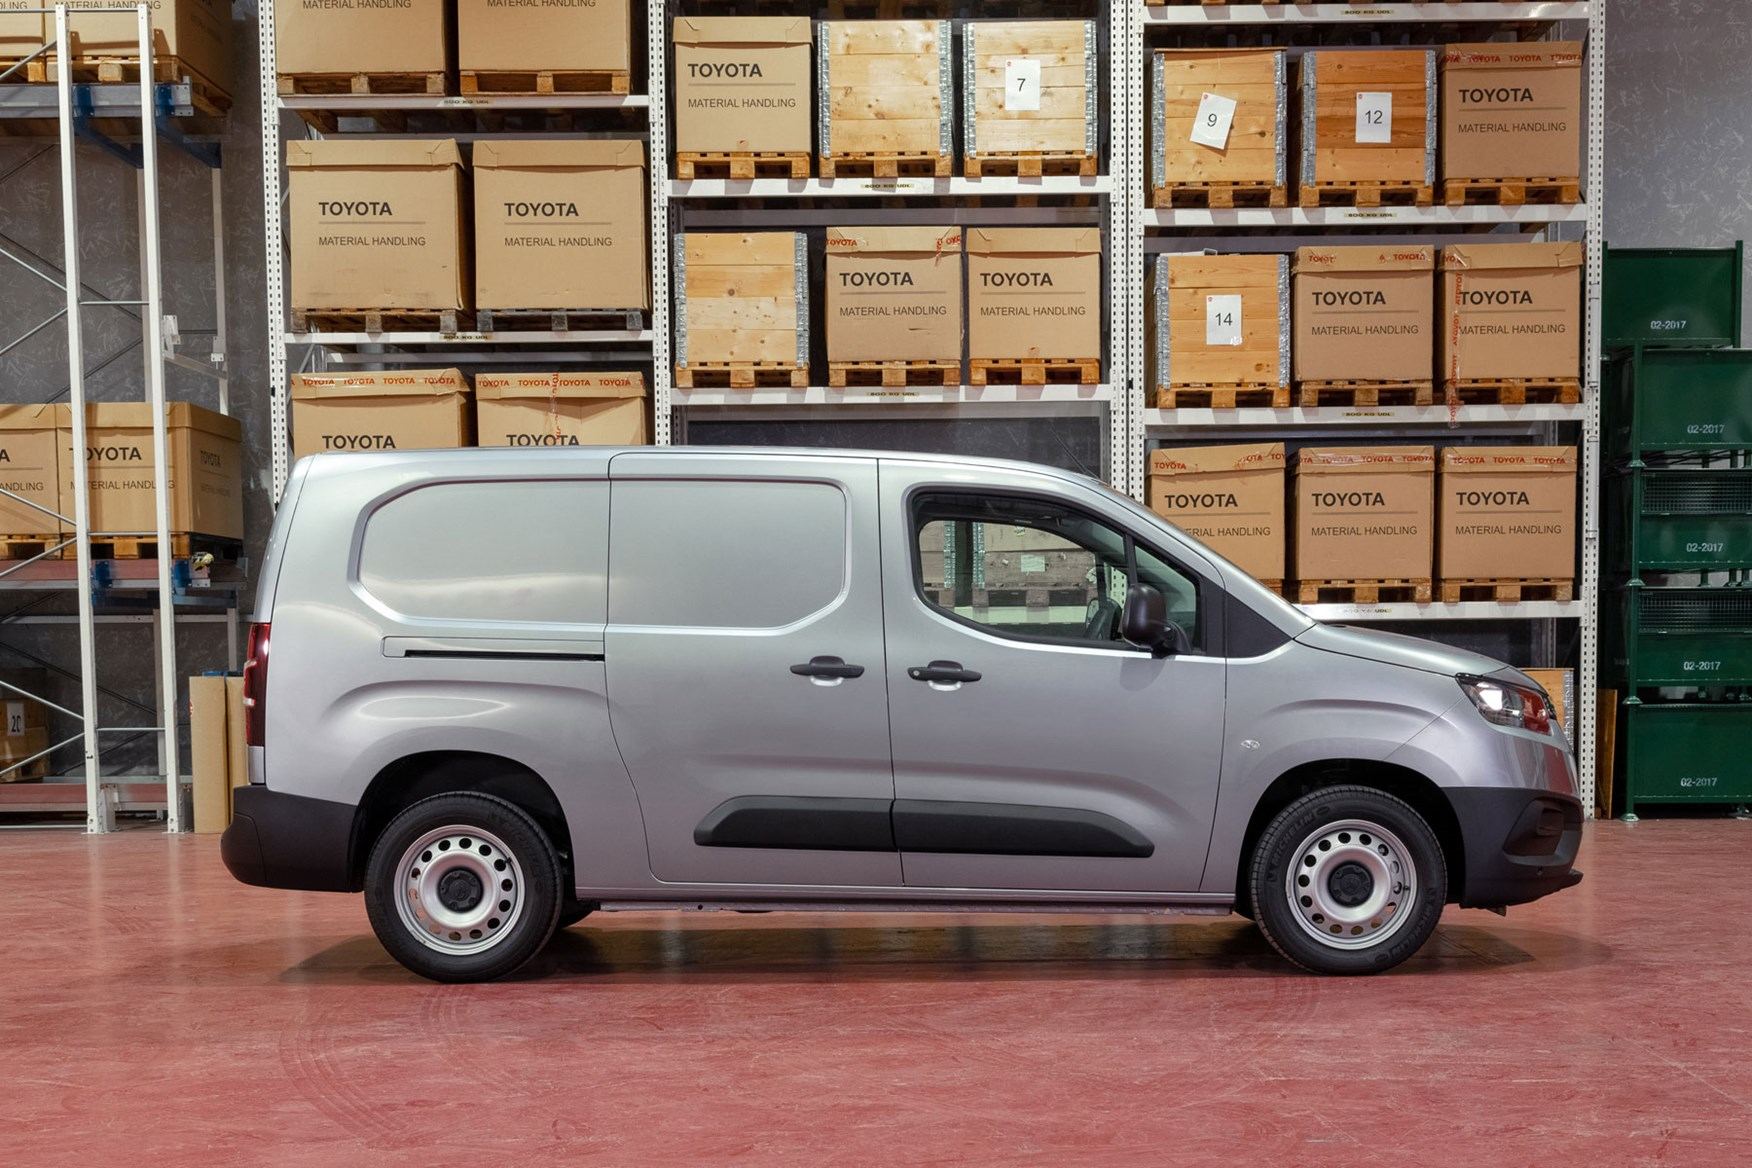 2020 Toyota Proace City review - LWB, side view, silver